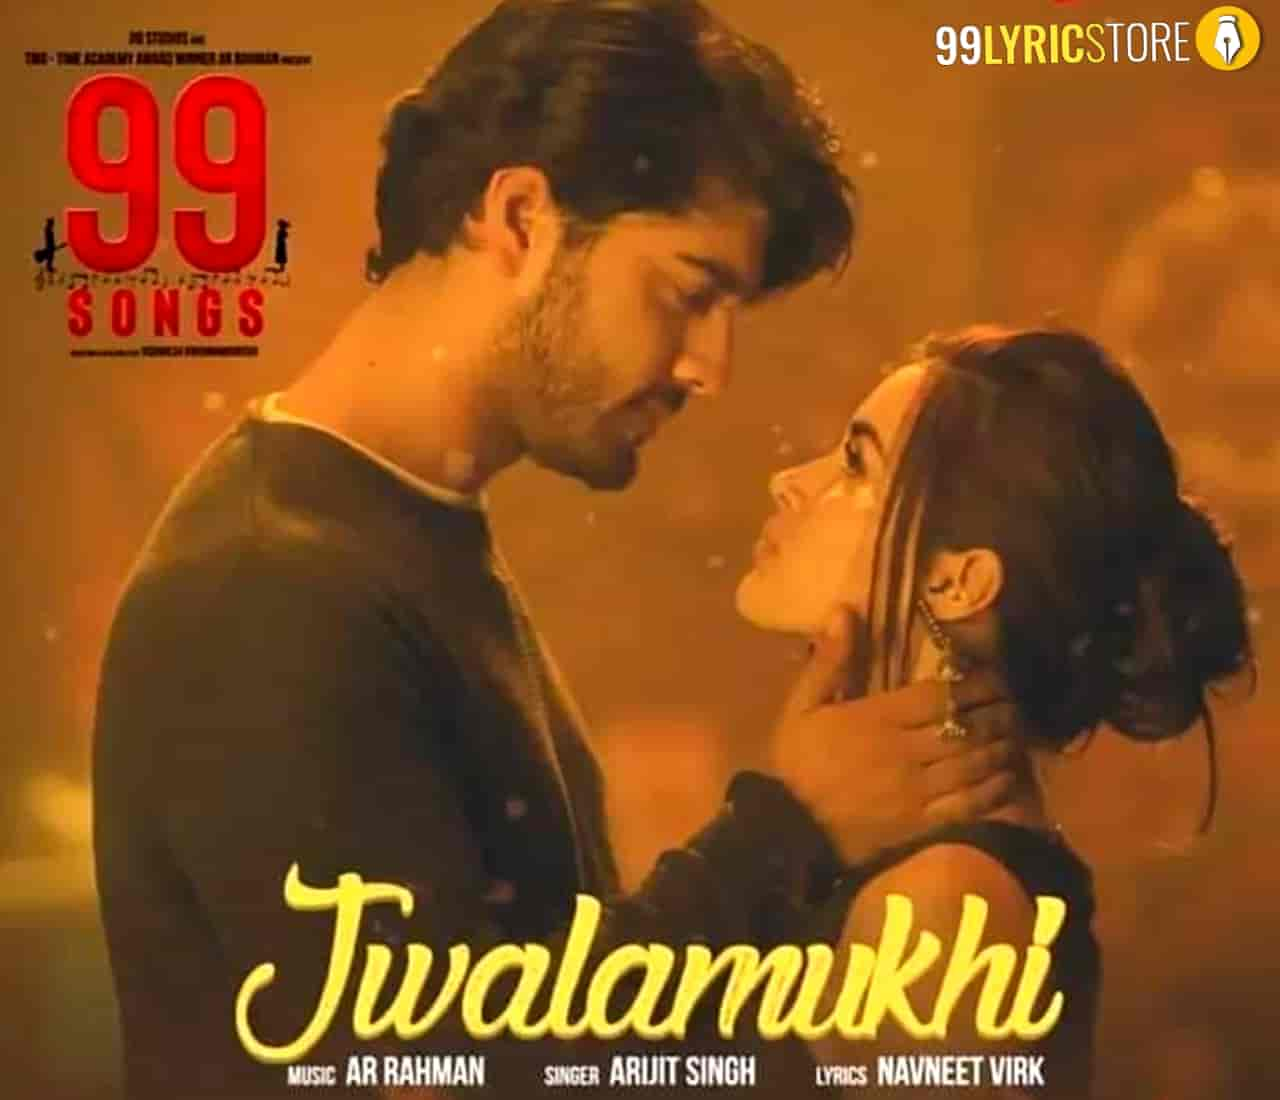 """Jwalamukhi Lyrics :- Feel the fire of love in this love season by Jwalamukhi Song from legend A.R. Rahman's music album """"99Songs"""" which is very beautifully sung by Arijit Singh. Music of this song given by great musician A.R. Rahman while this beautiful track Jwalamukhi lyrics has penned by Navneet Virk. This song is presented by Sony Music India label."""